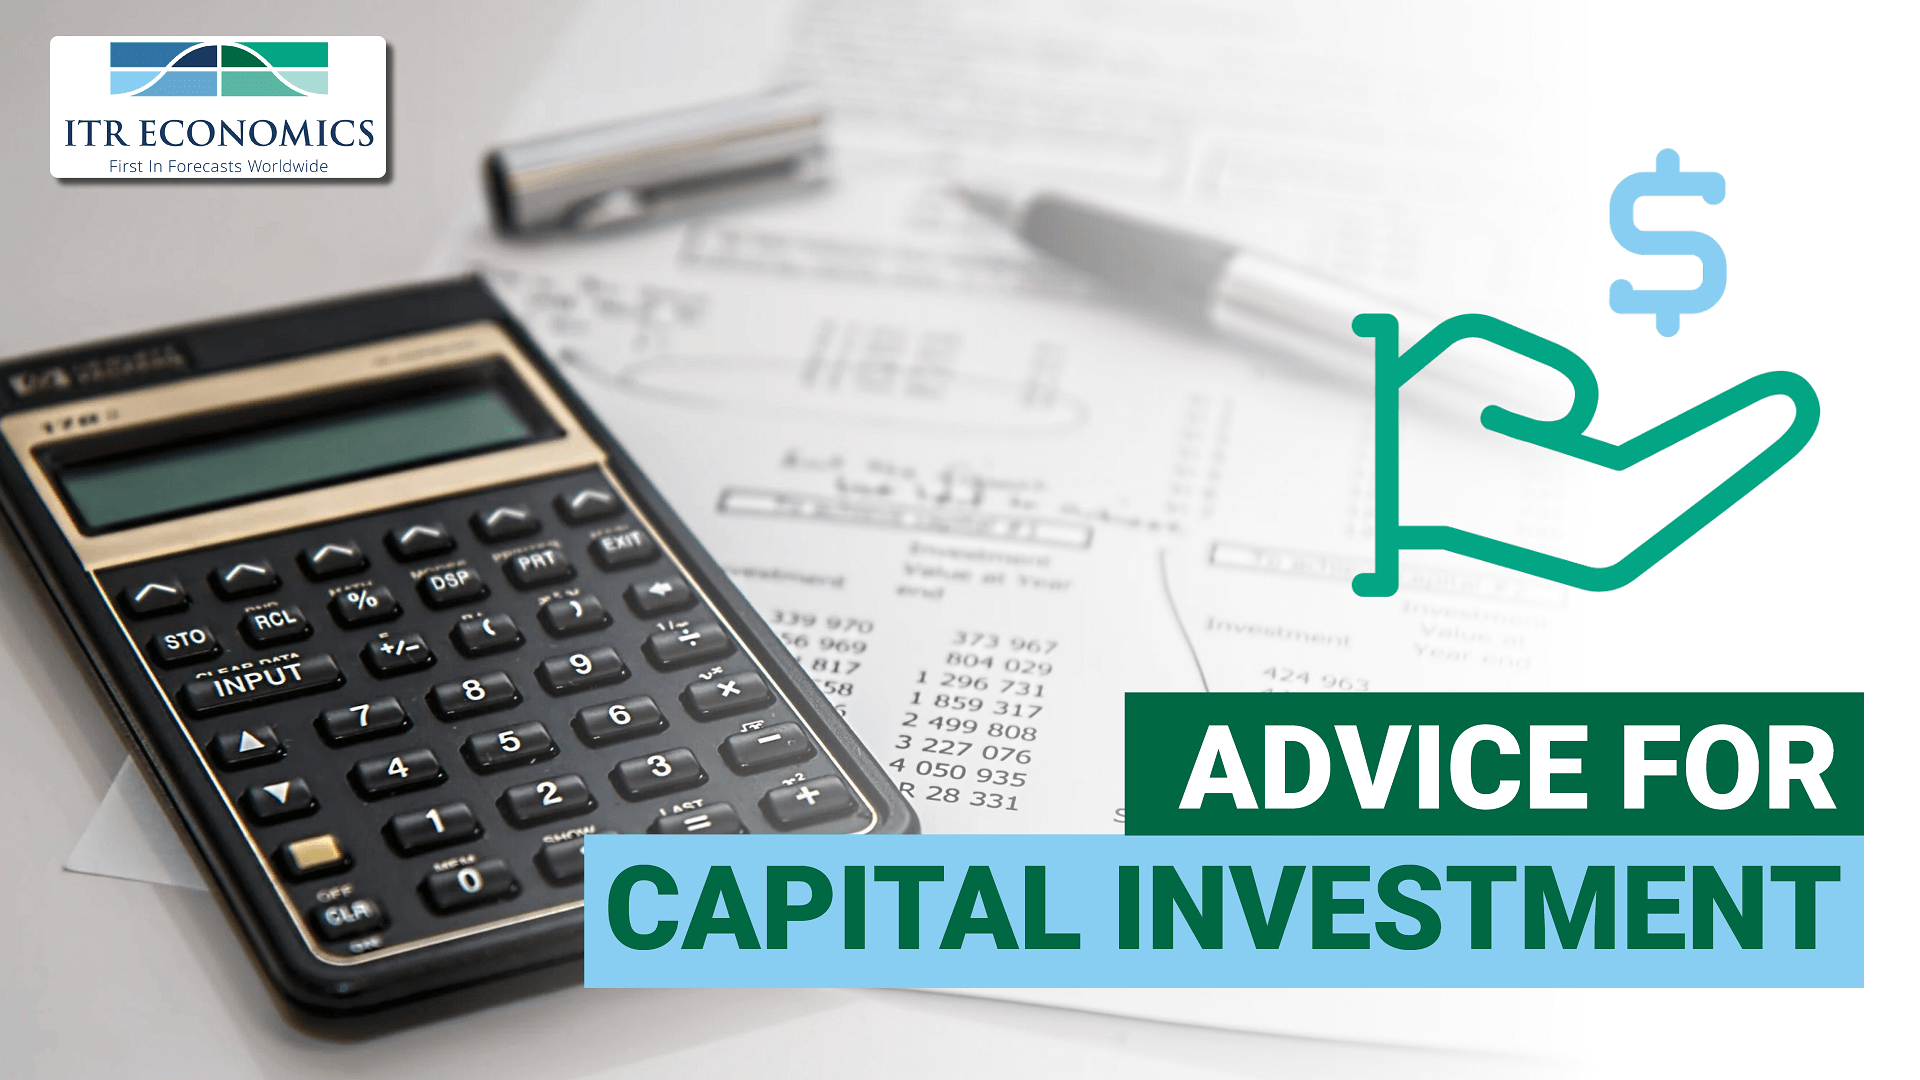 Advice for Capital Investment